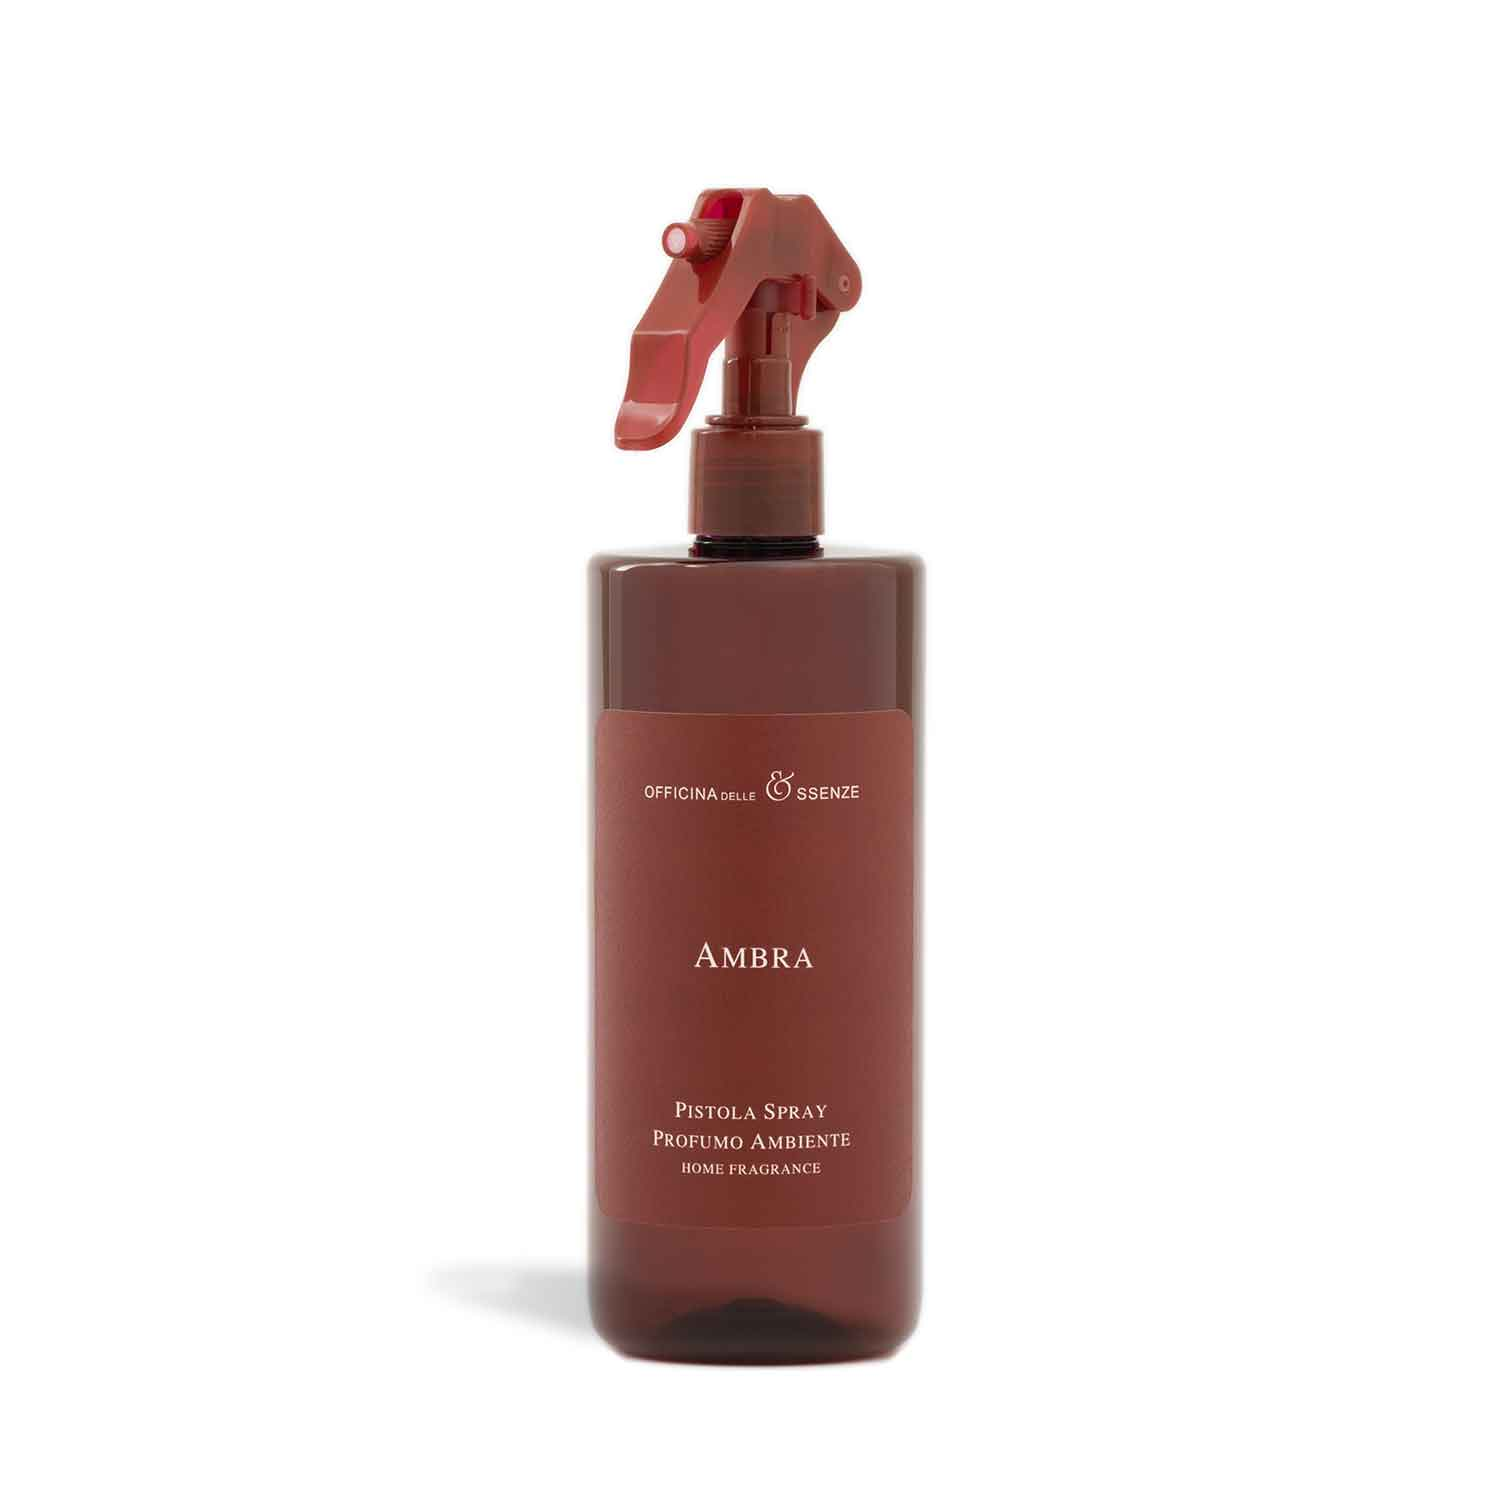 Ambra pistola spray 500ml